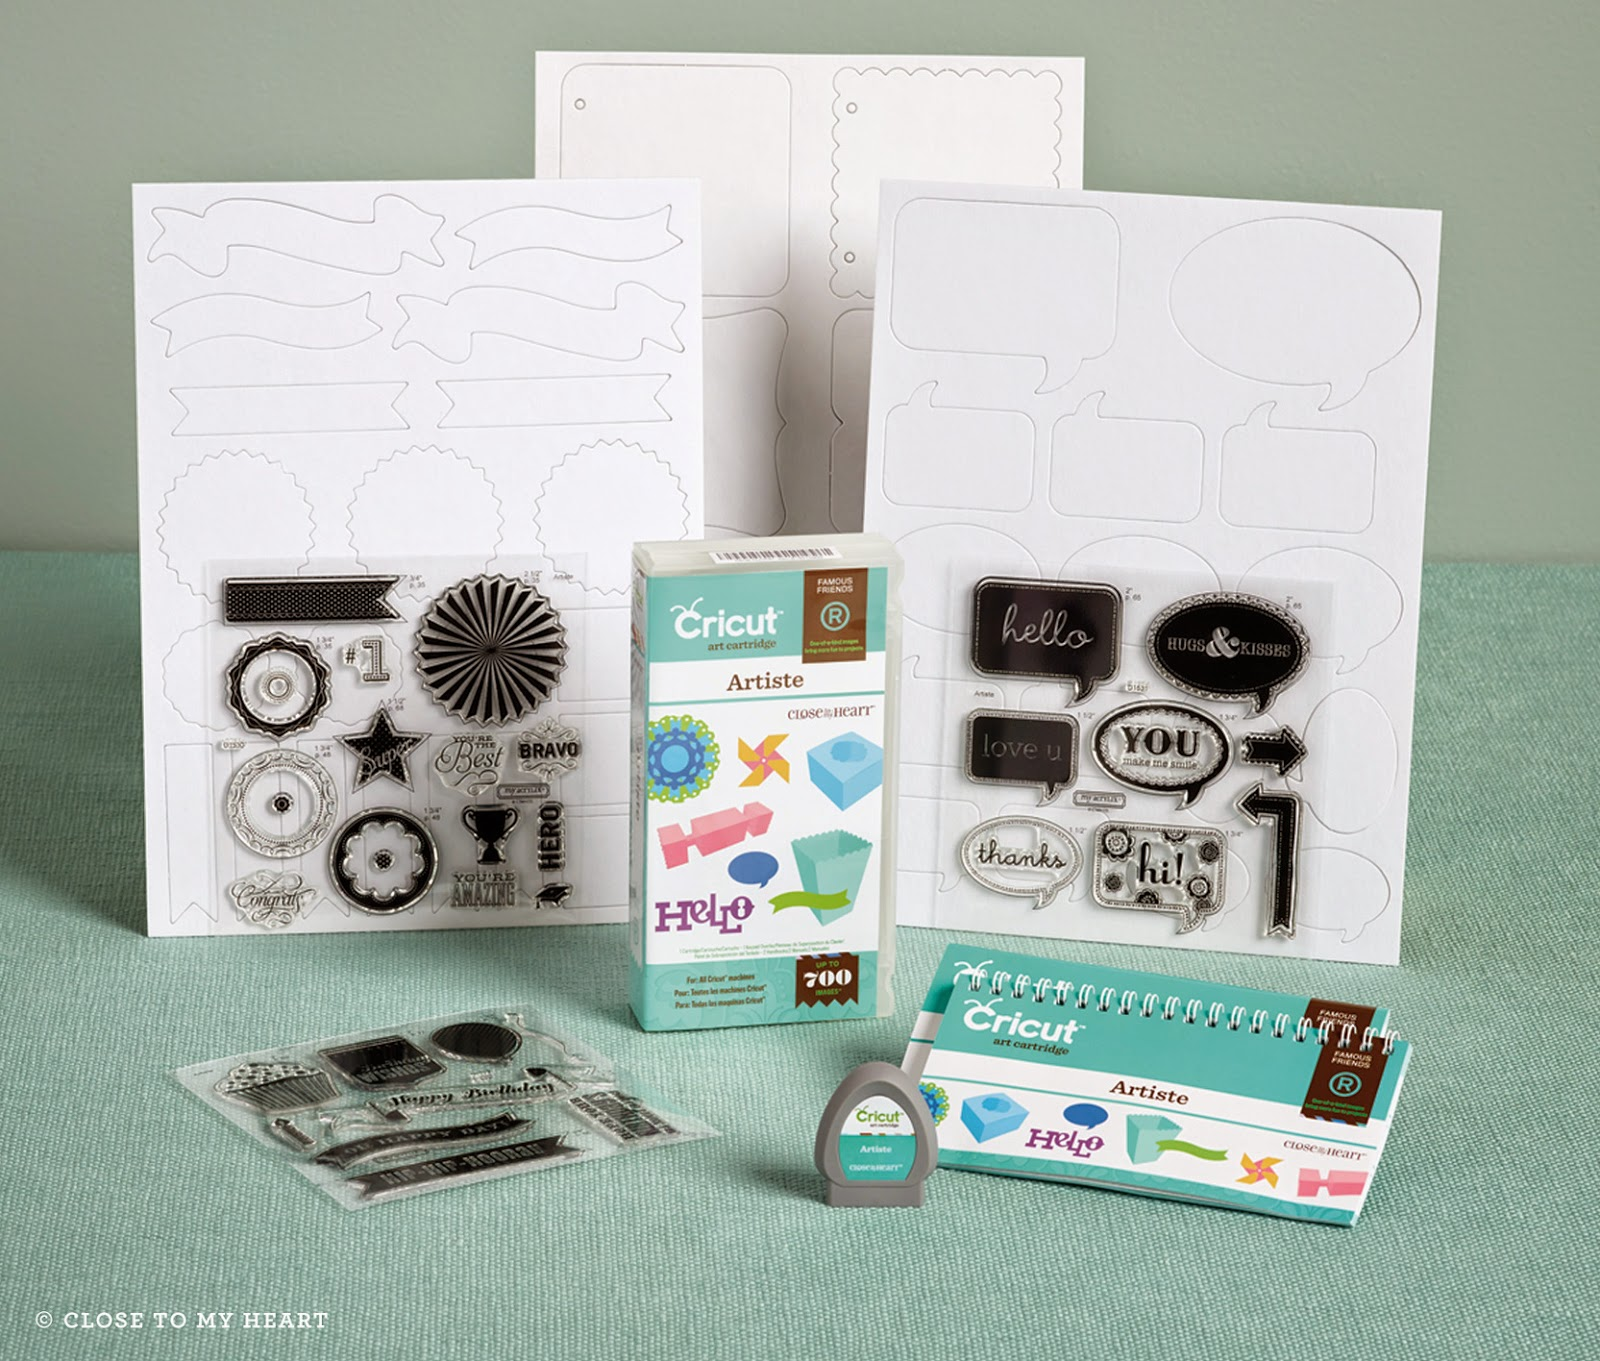 Free Cricut Artiste Cartridge